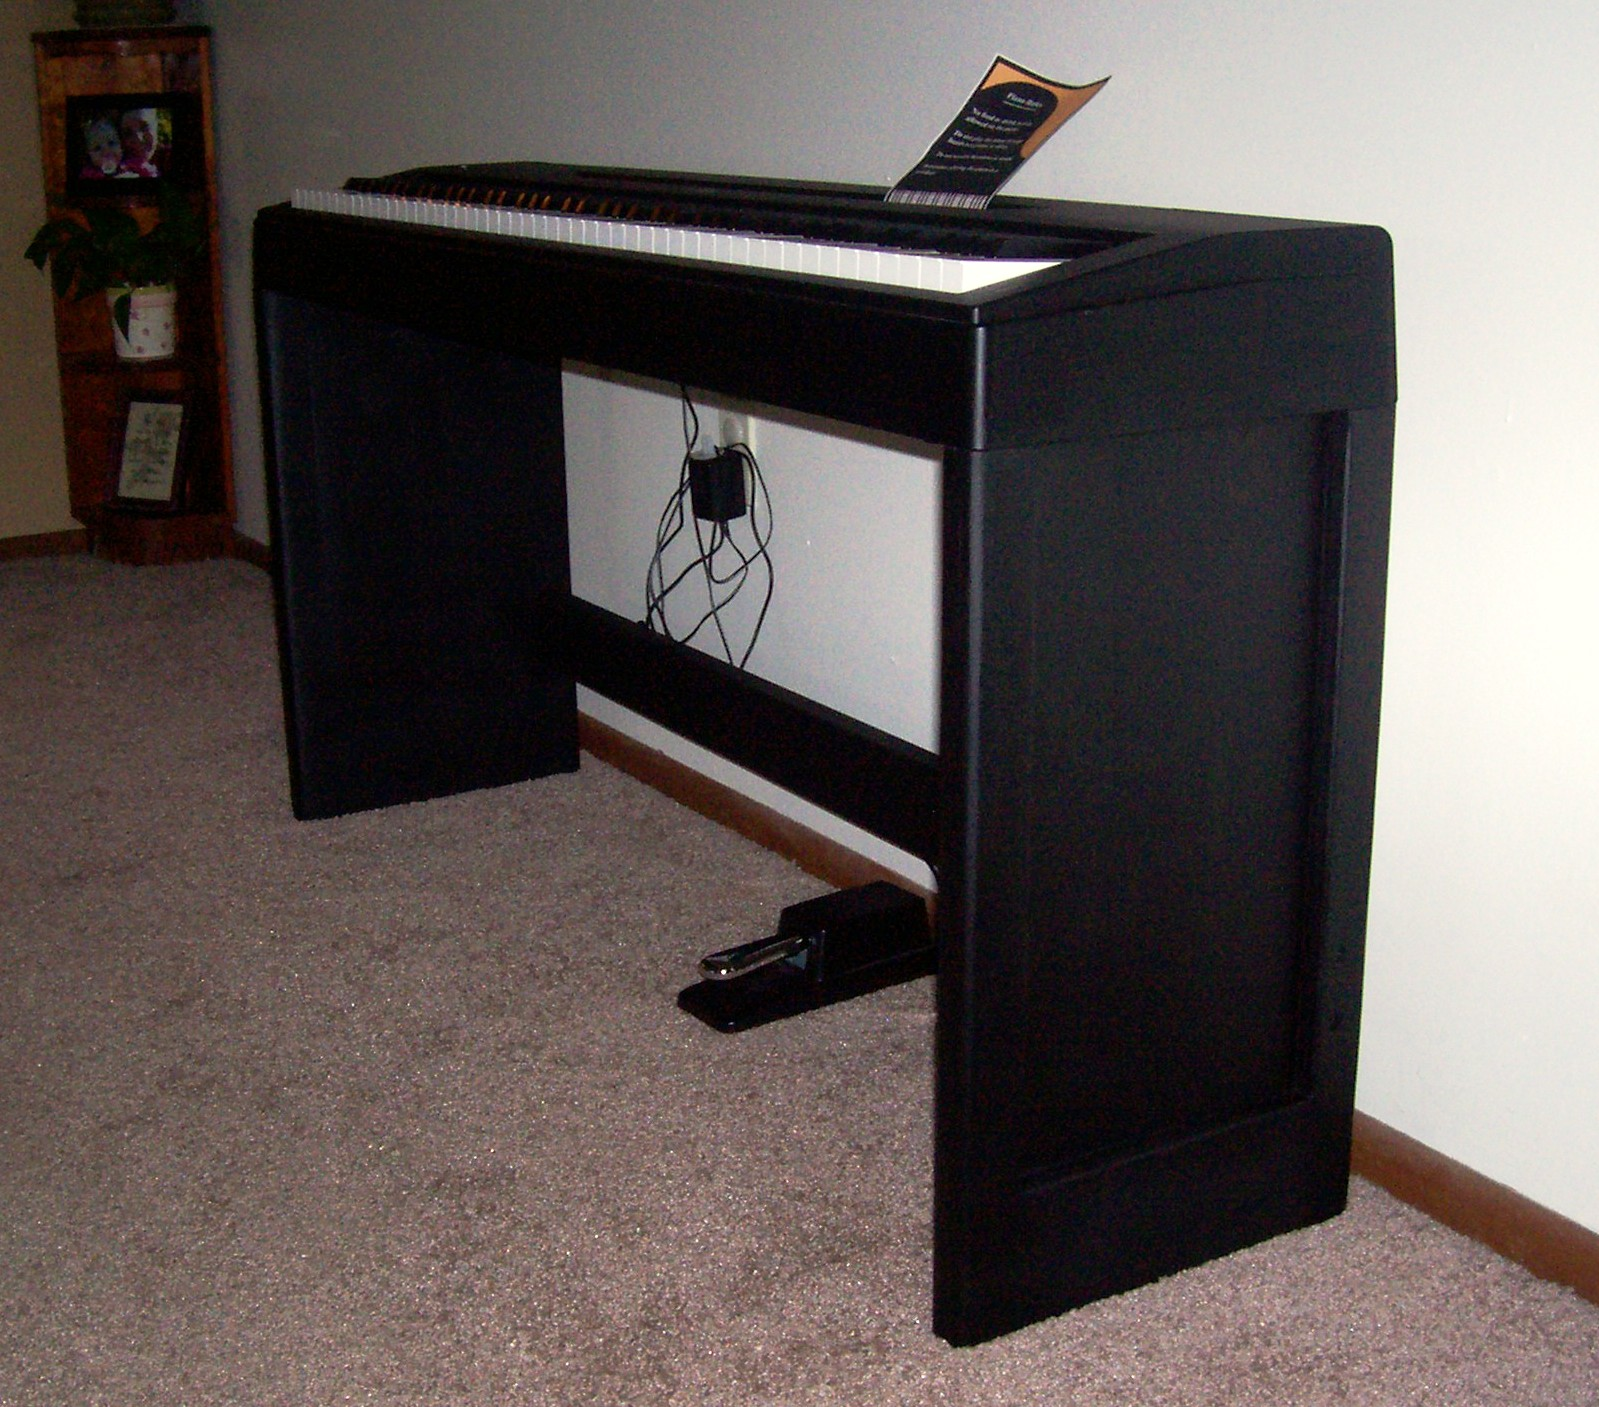 Frugal Homemaking My Newest Piece of Frugal Furniture